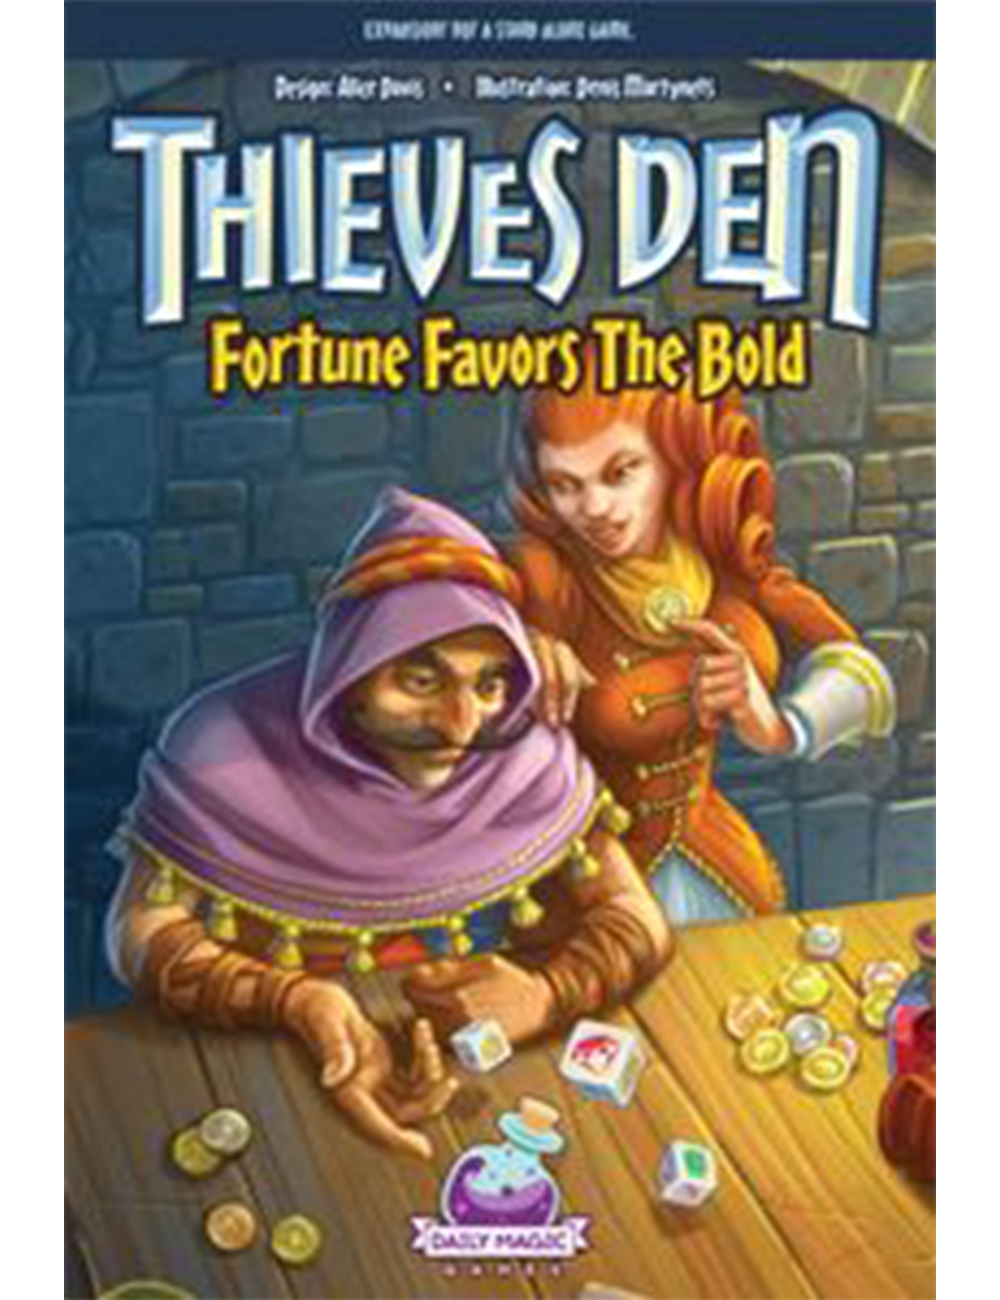 Thieves Den: Fortune Favors The Bold